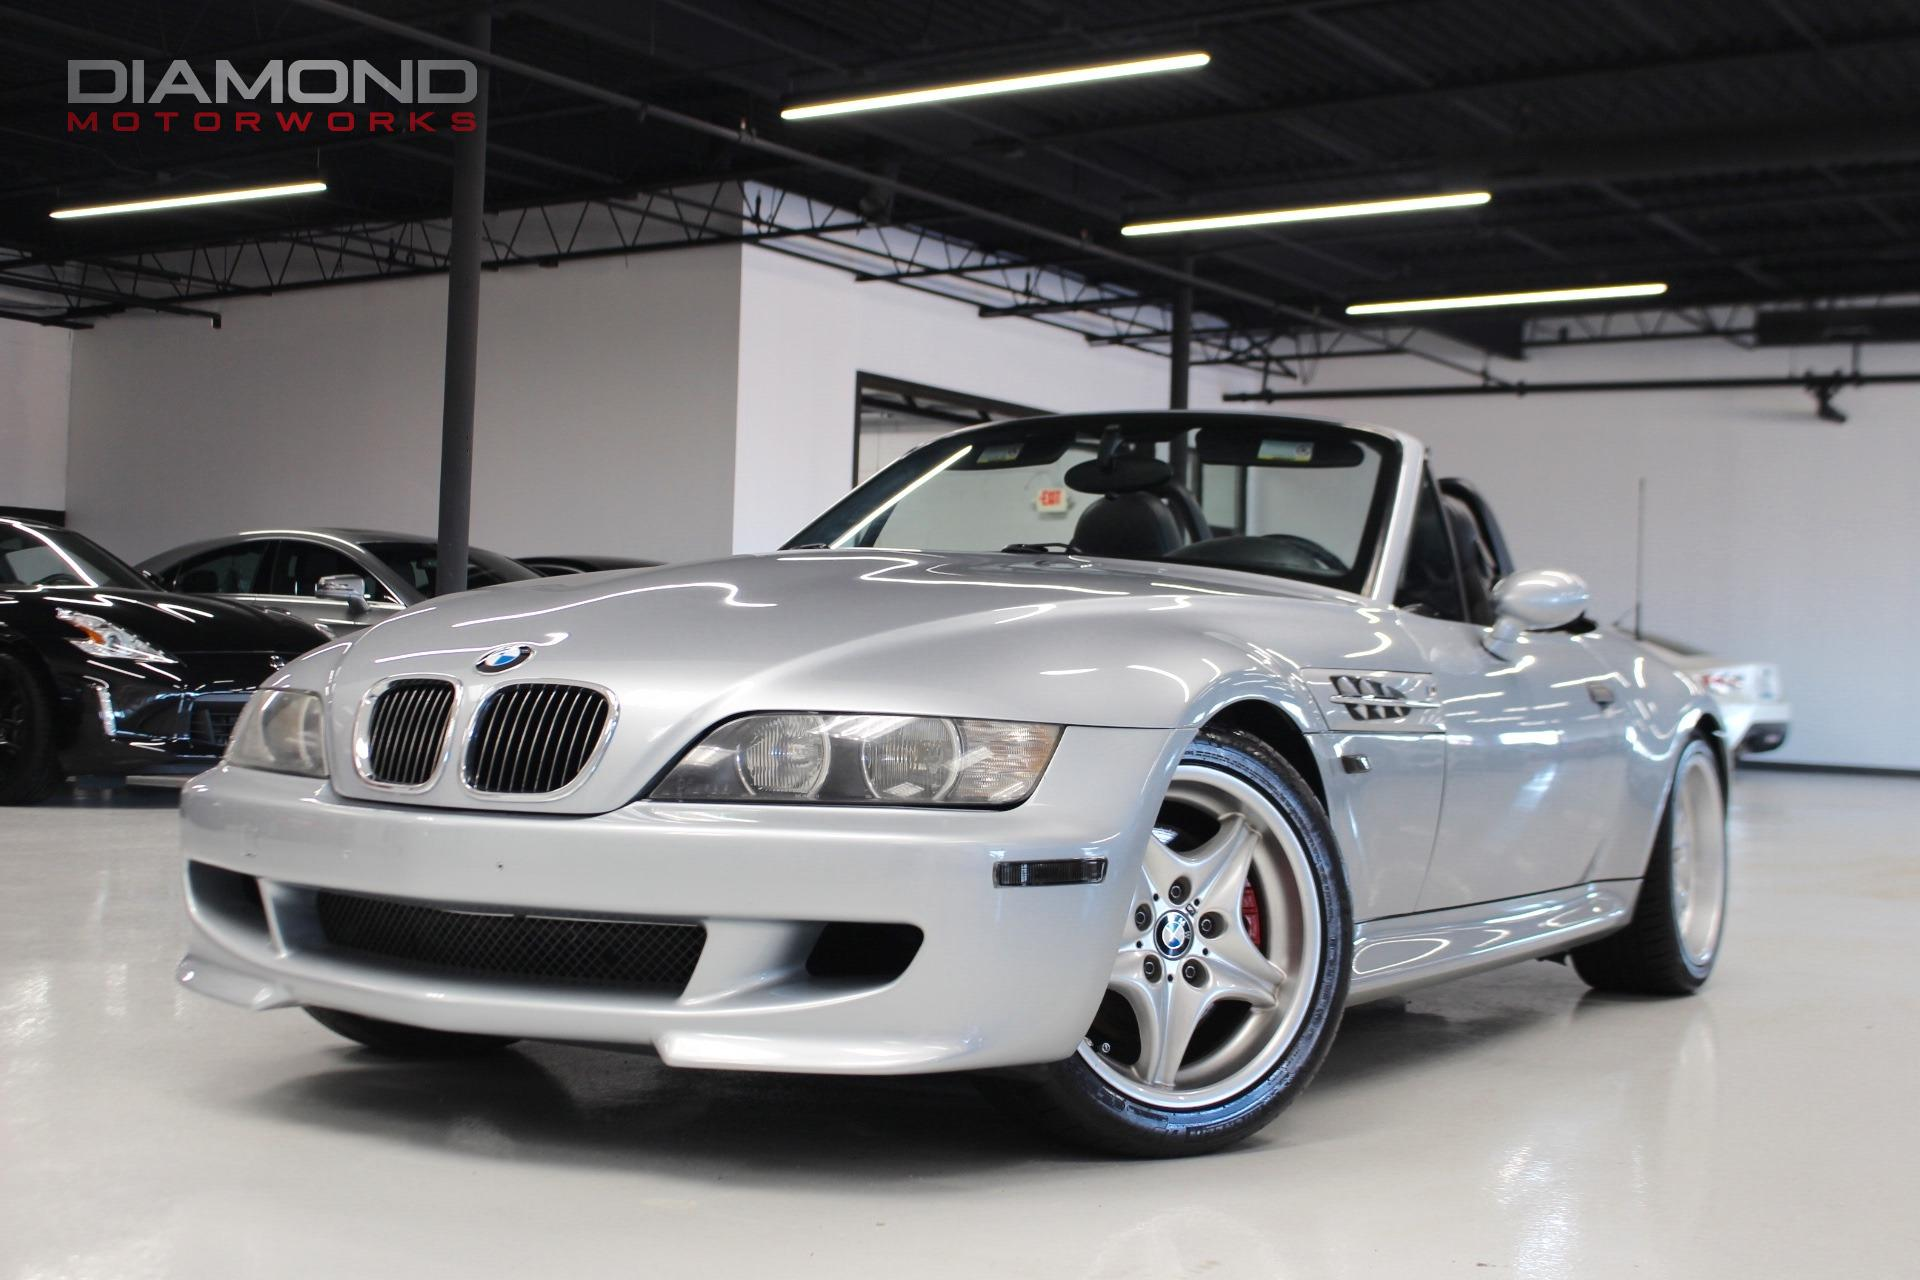 1999 Bmw Z3 M Roadster Stock C89075 For Sale Near Lisle Il Il Bmw Dealer